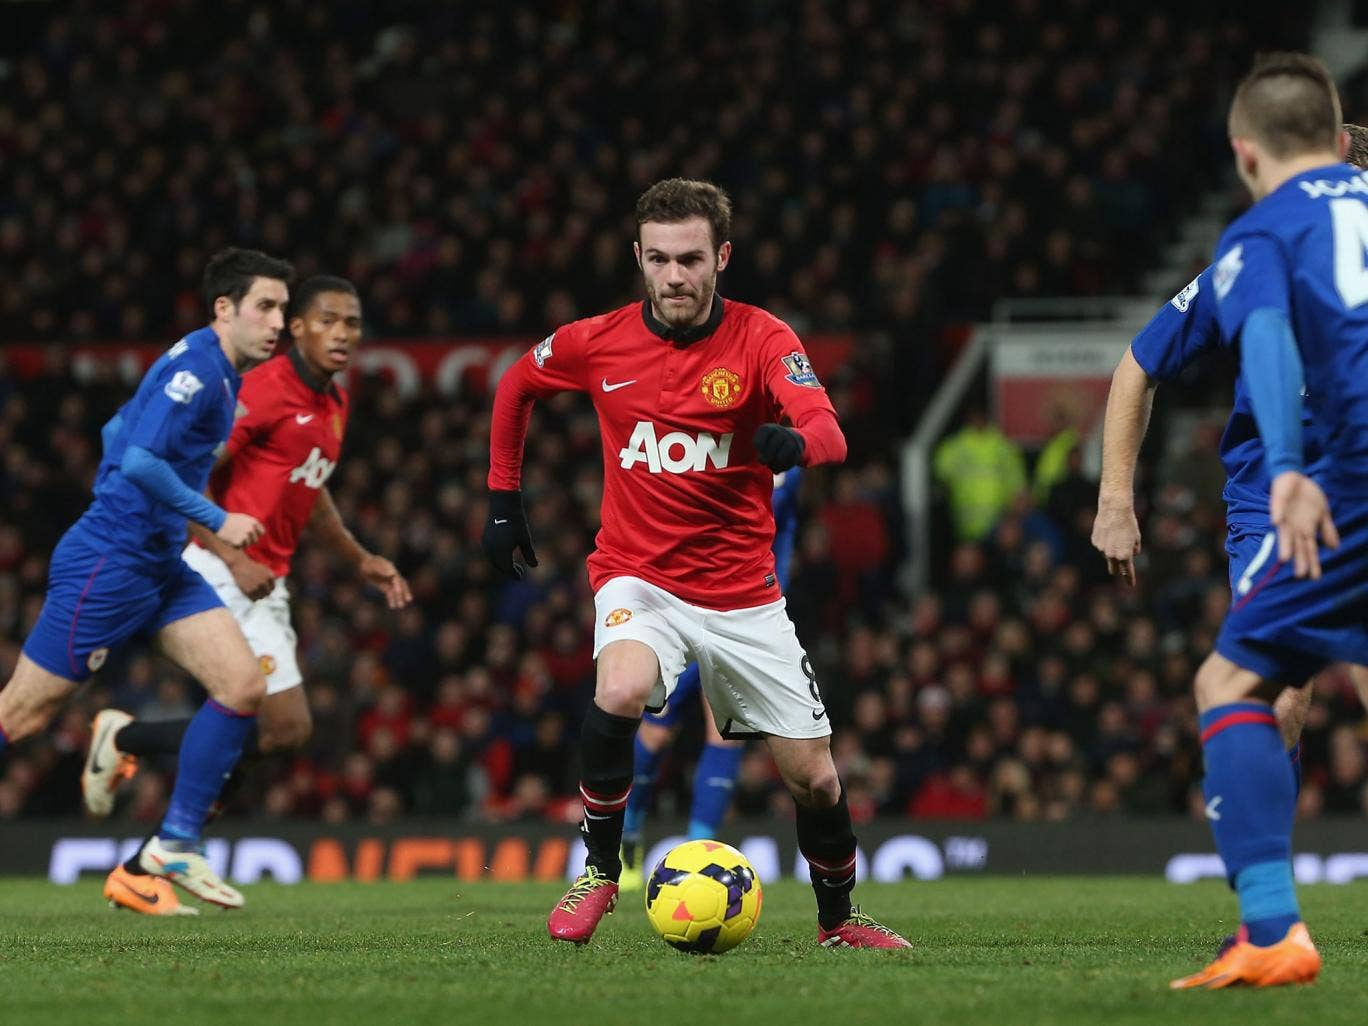 Juan Mata in action on his debut for Manchester United against Cardiff